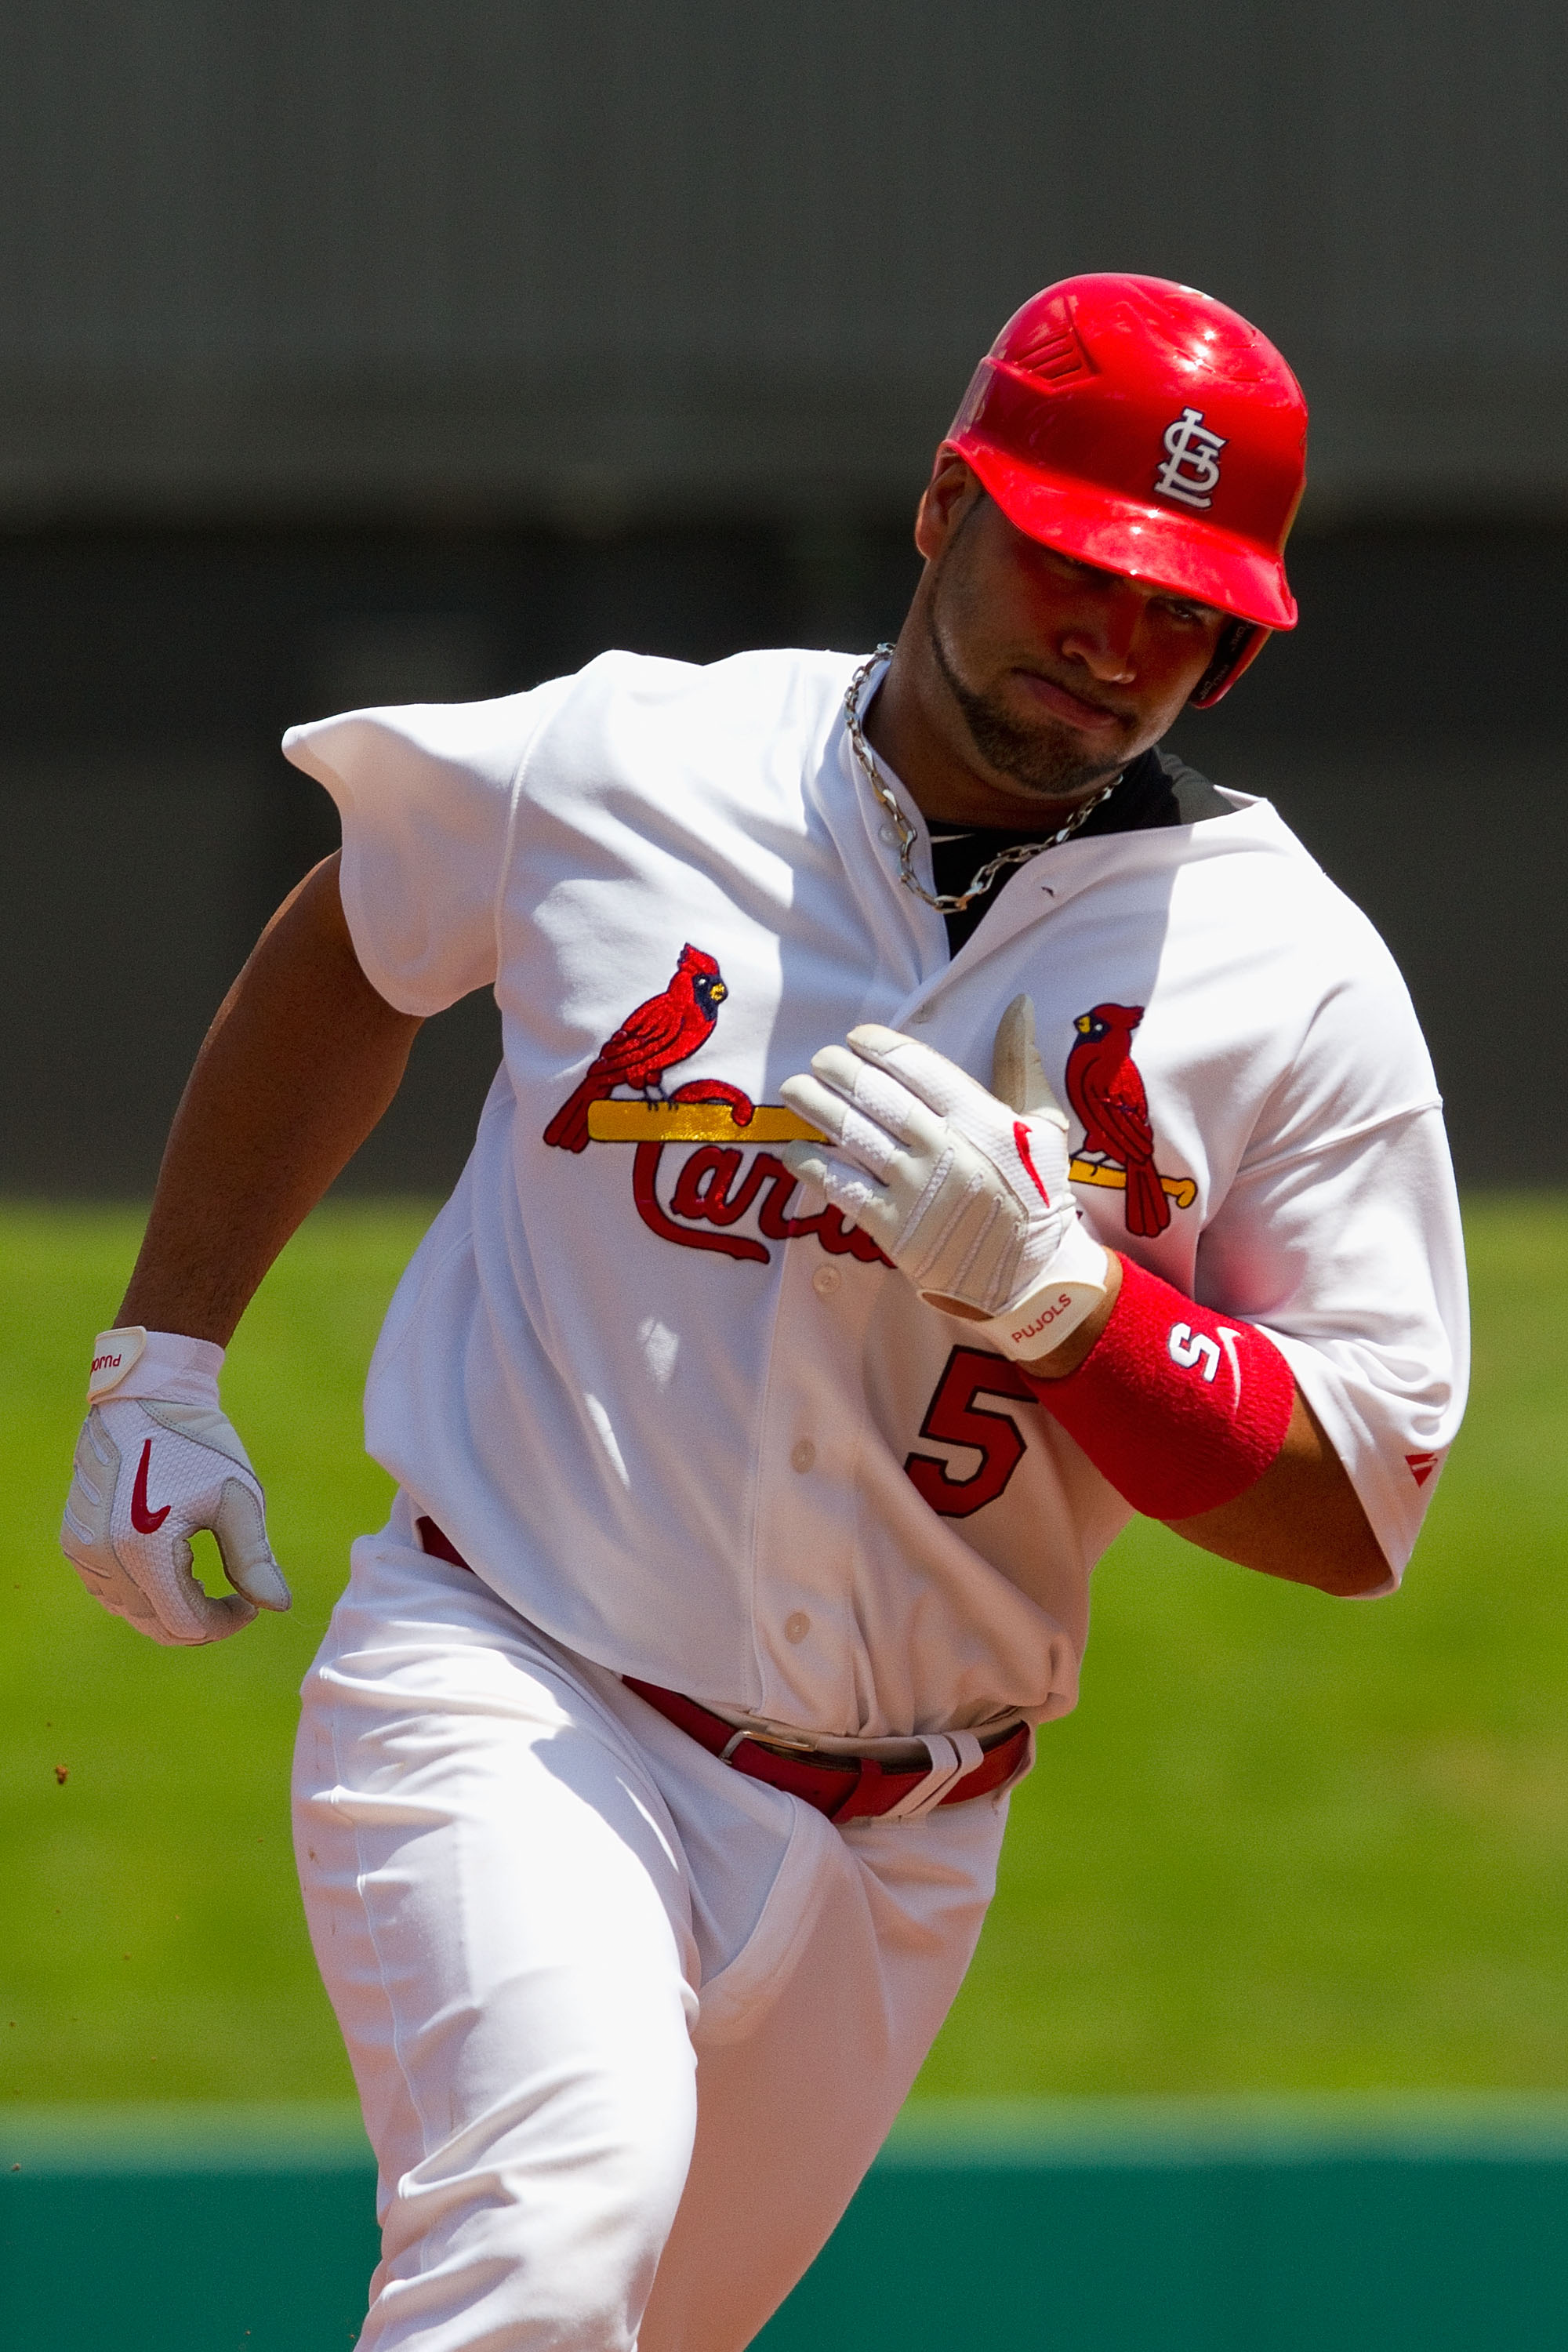 ST. LOUIS - AUGUST 15: Albert Pujols #5 of the St. Louis Cardinals rounds the bases after hitting a home run against the Chicago Cubs at Busch Stadium on August 15, 2010 in St. Louis, Missouri.  The Cubs beat the Cardinals 9-7.  (Photo by Dilip Vishwanat/